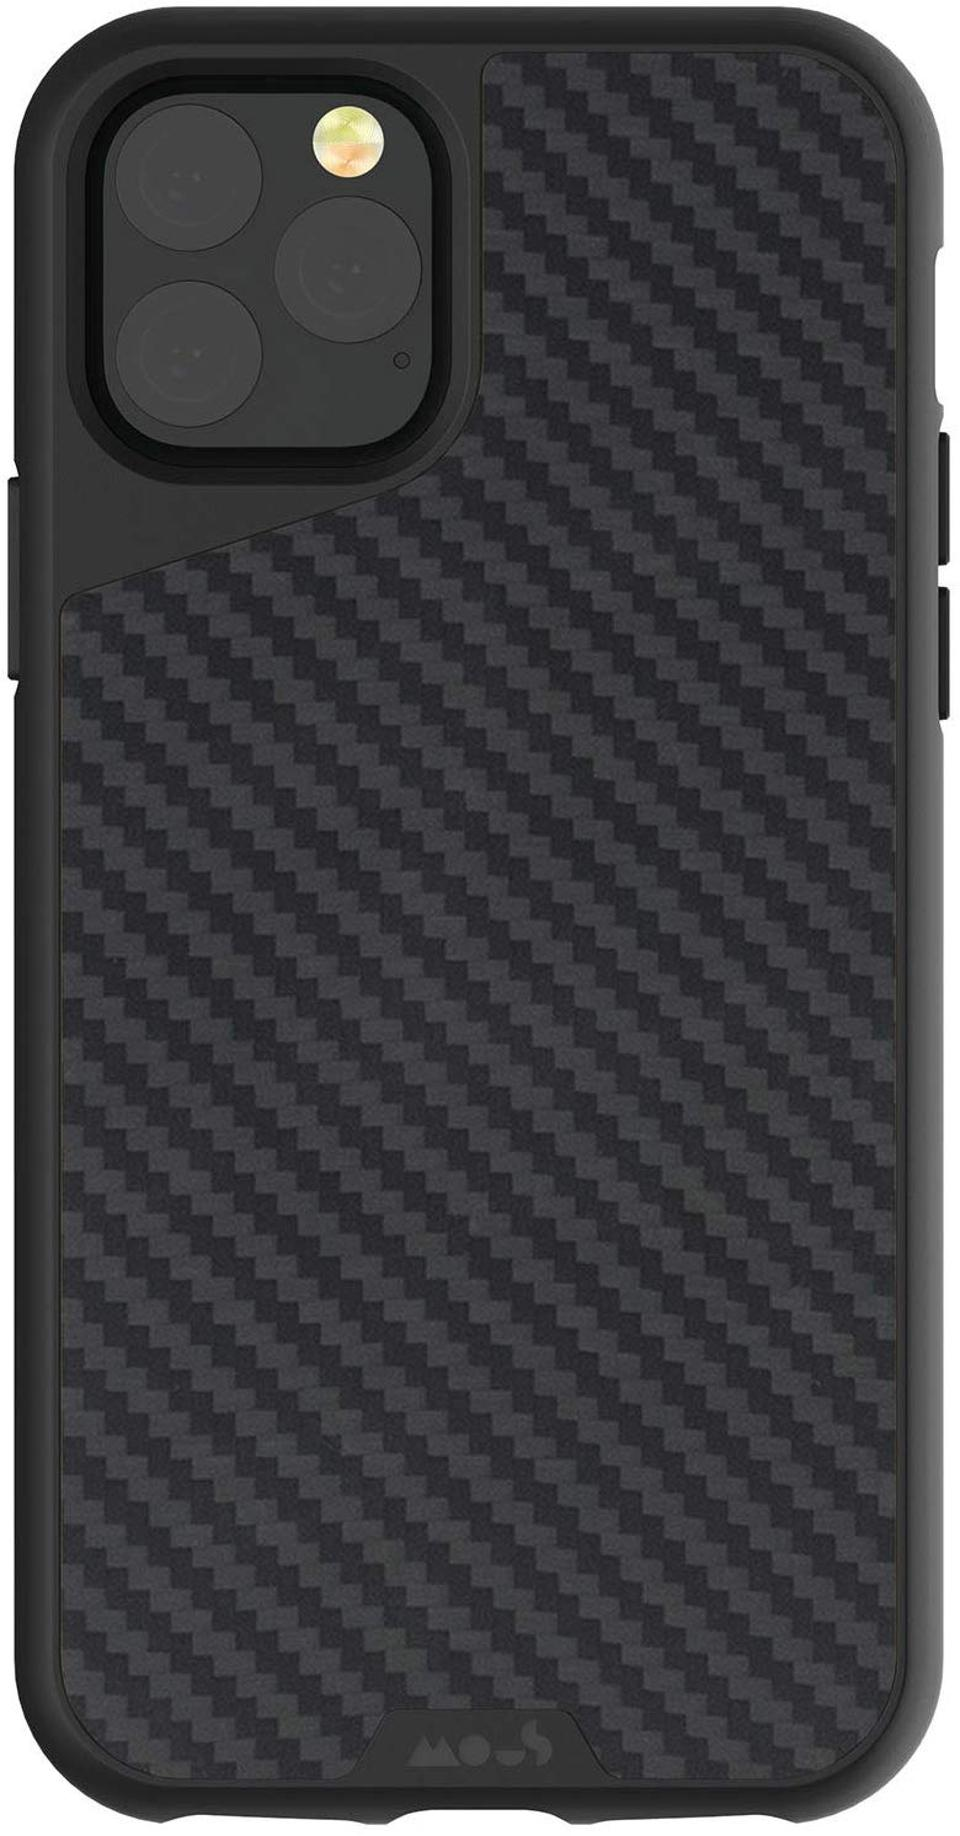 The Best iPhone 11 Pro And iPhone 11 Pro Max Cases [New Update]